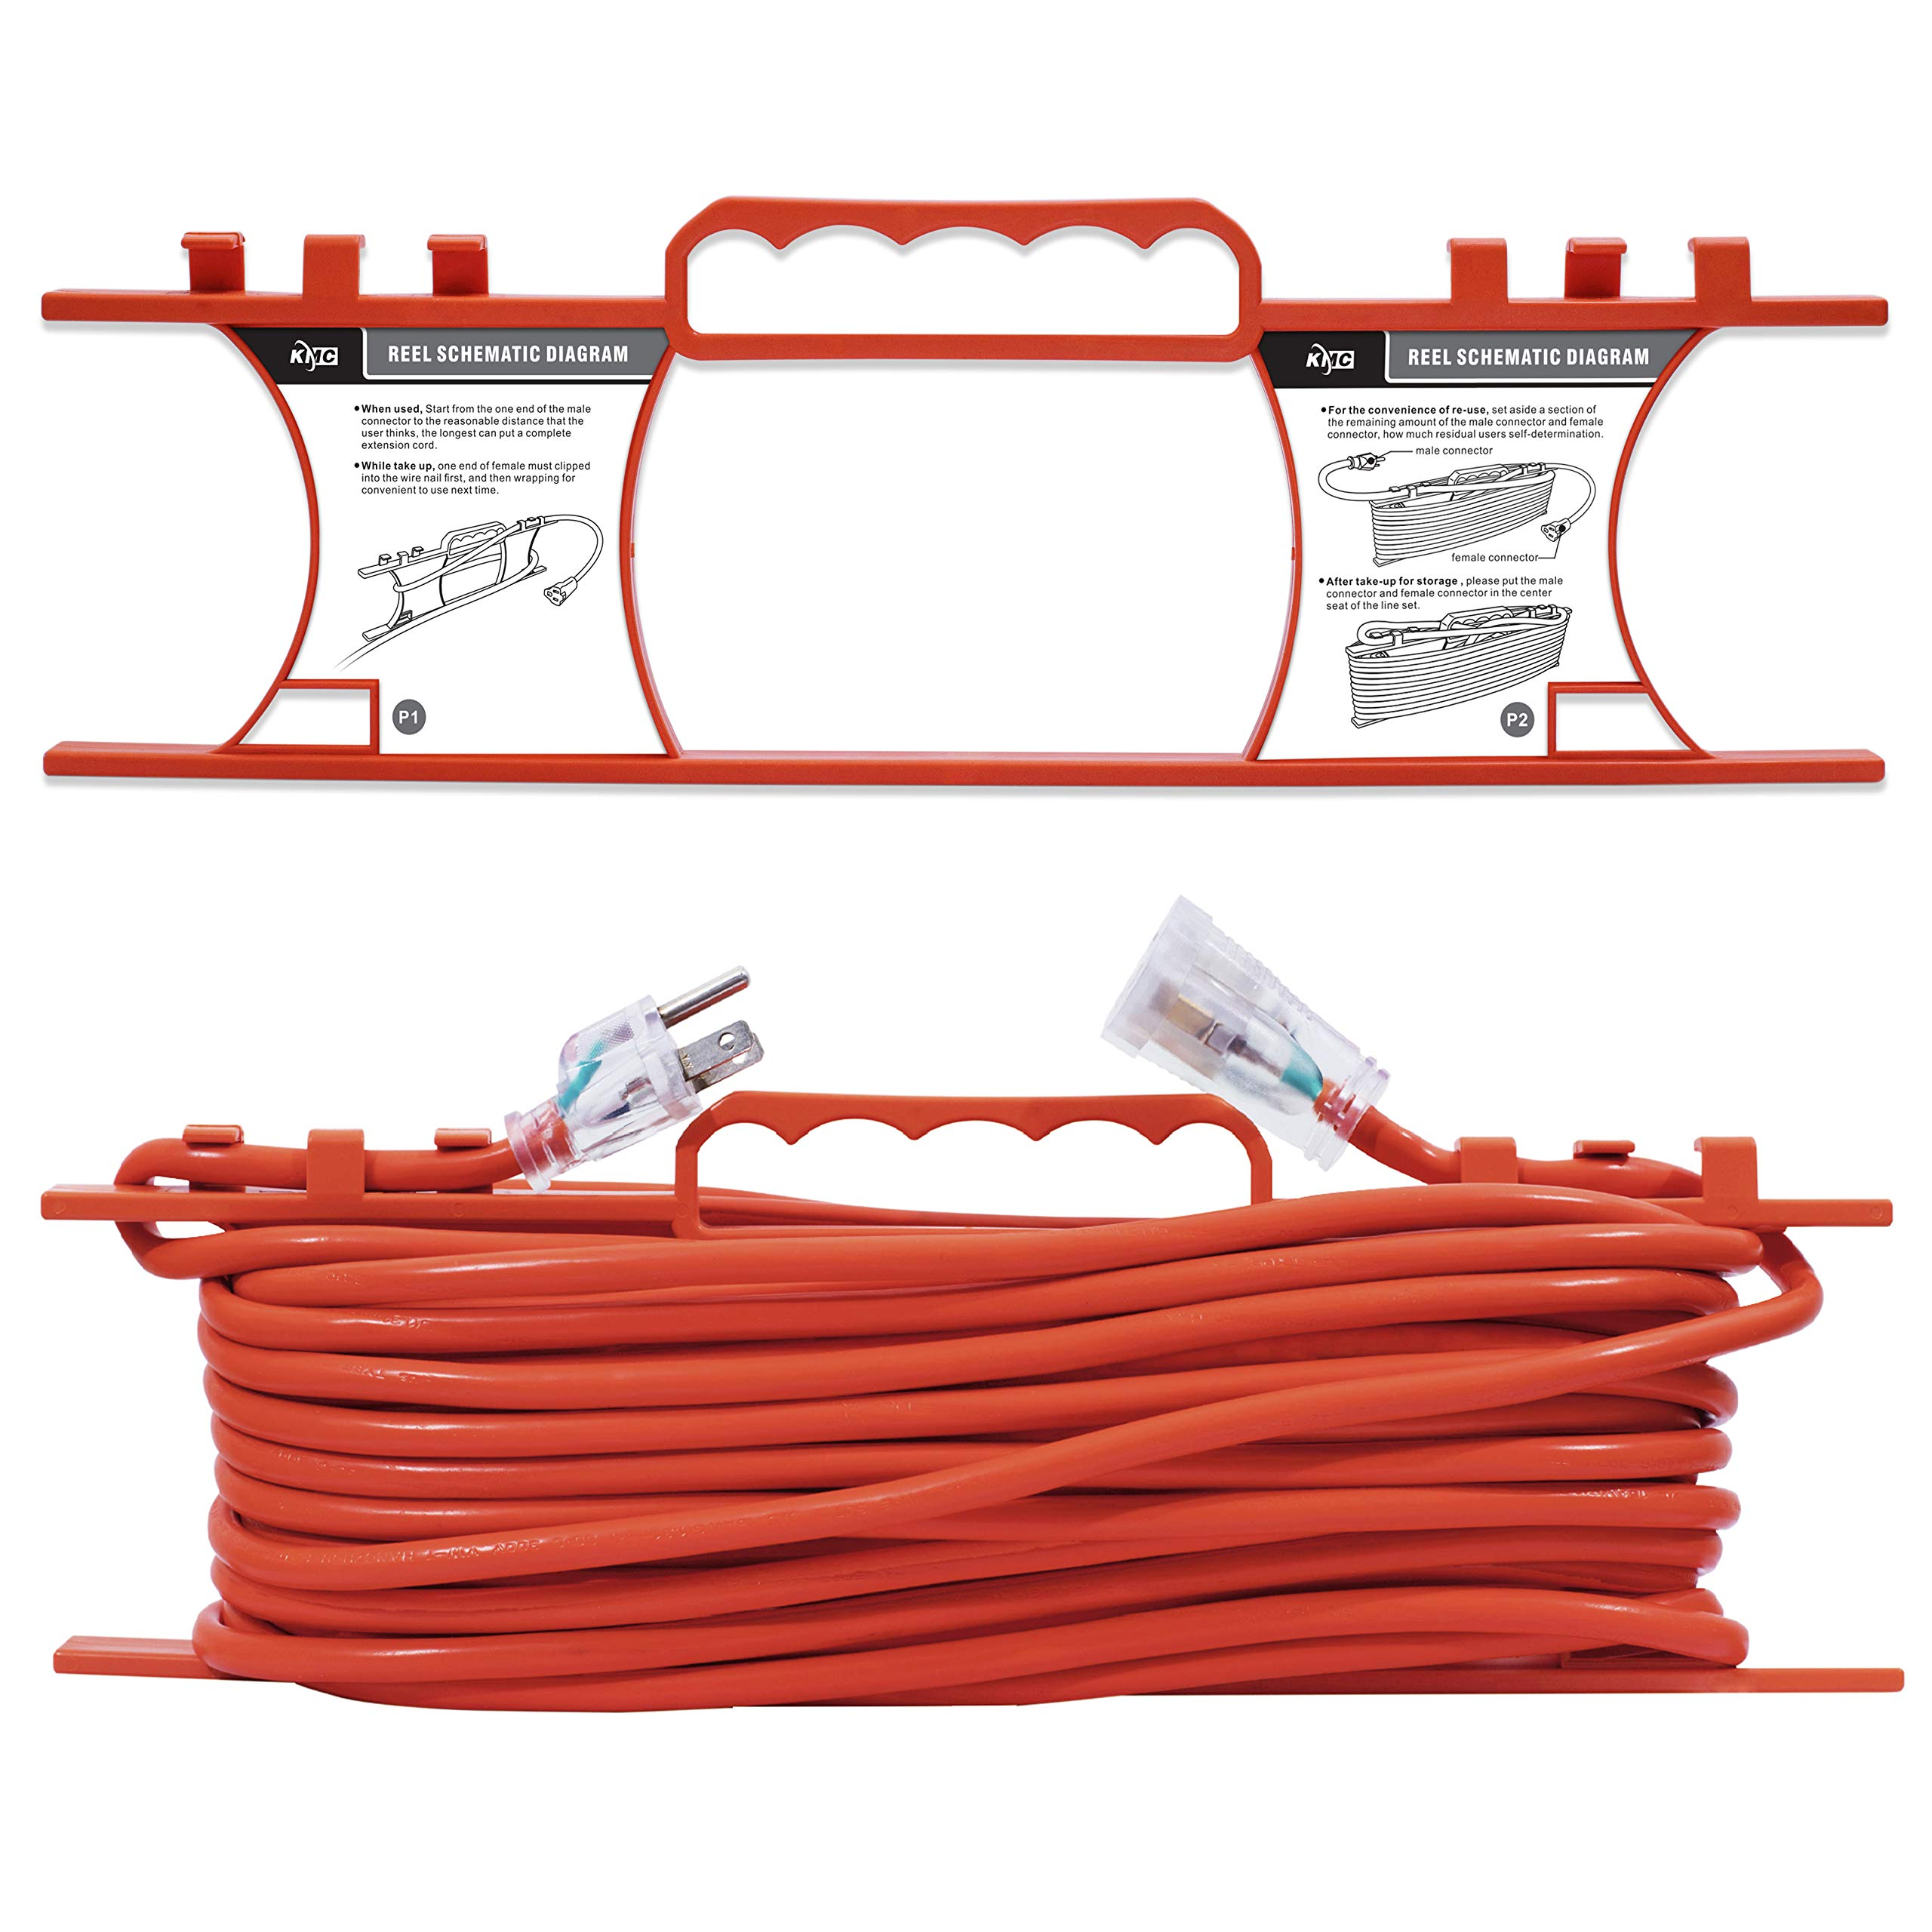 Details about KMC 16 AWG Power Outdoor Extension Cord with Winding on